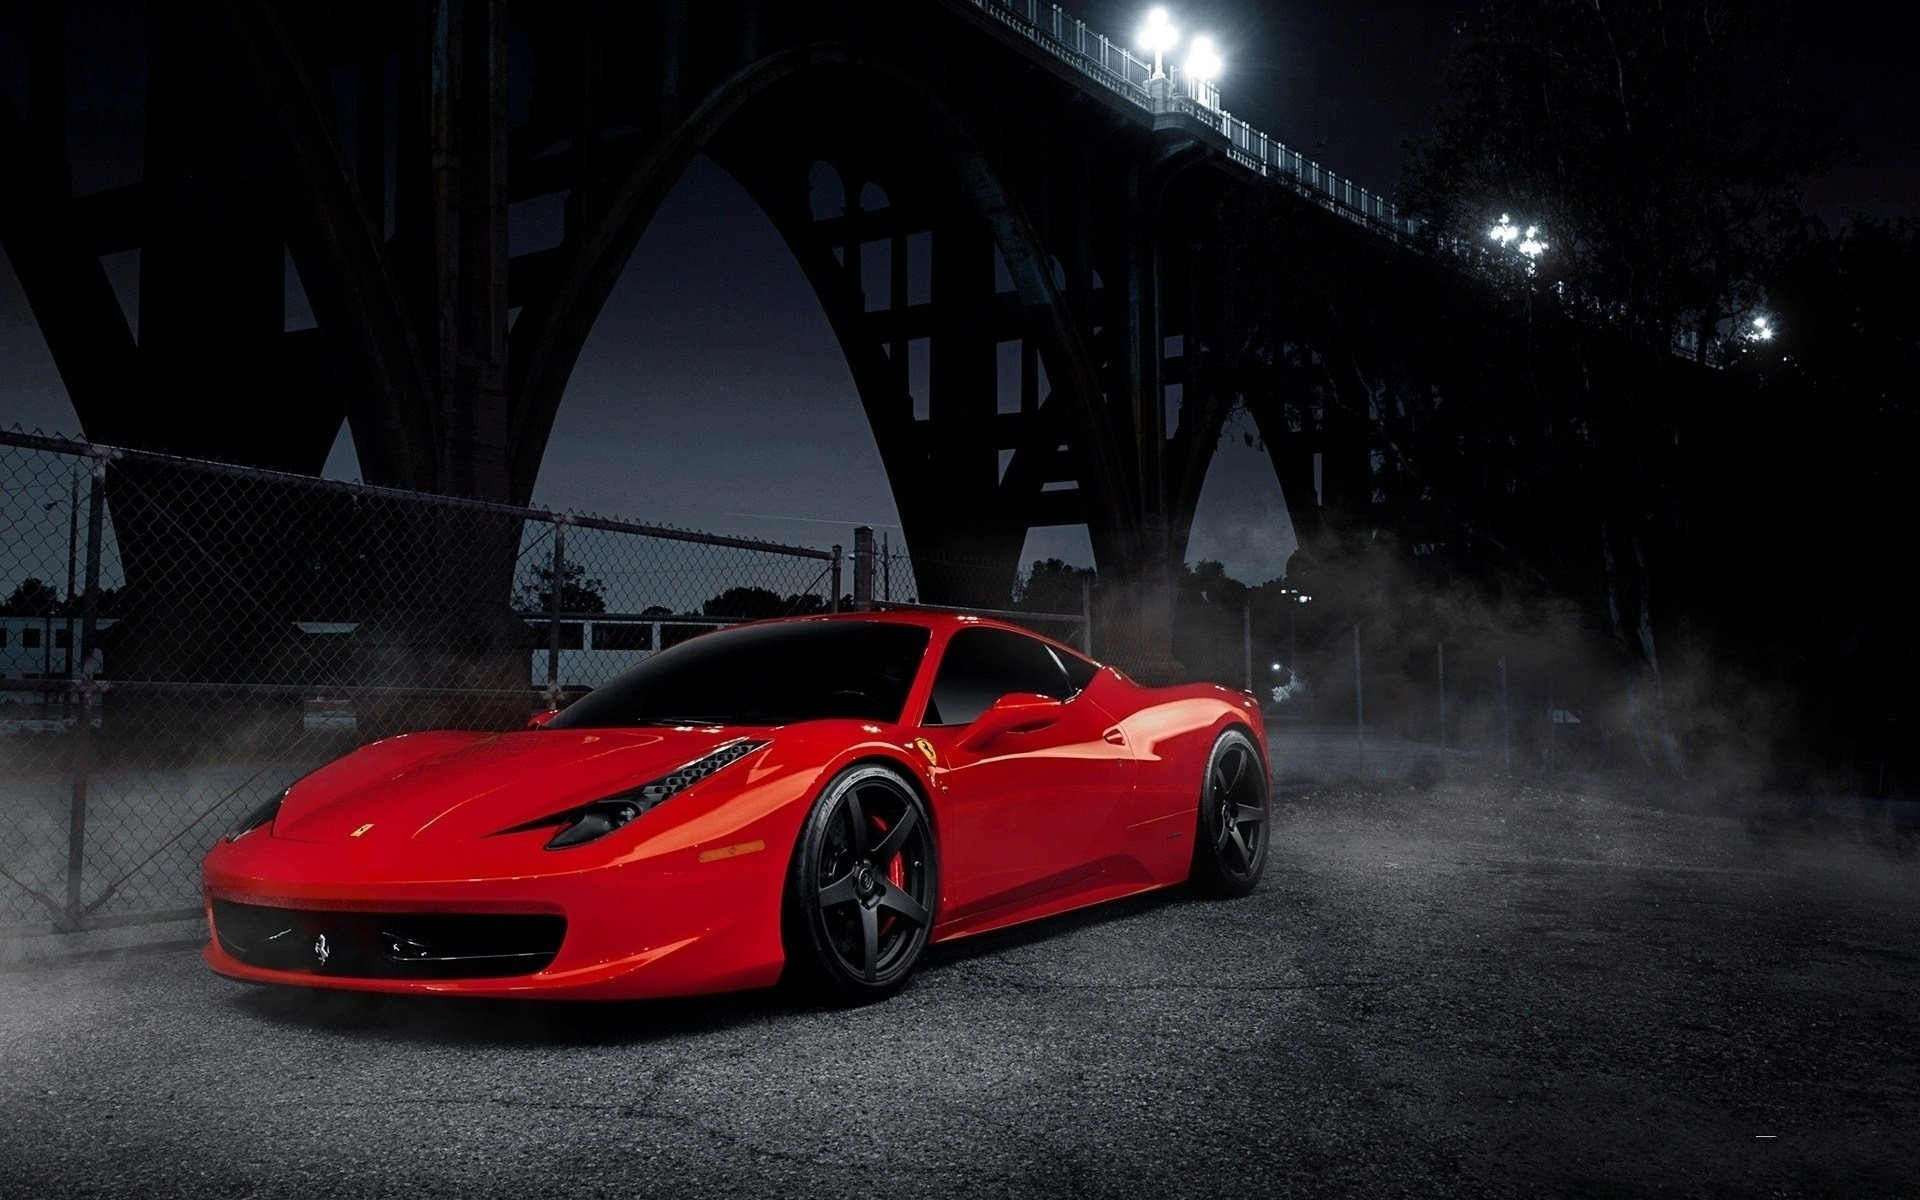 1920x1200 Vehicles - Ferrari 458 Italia Wallpaper